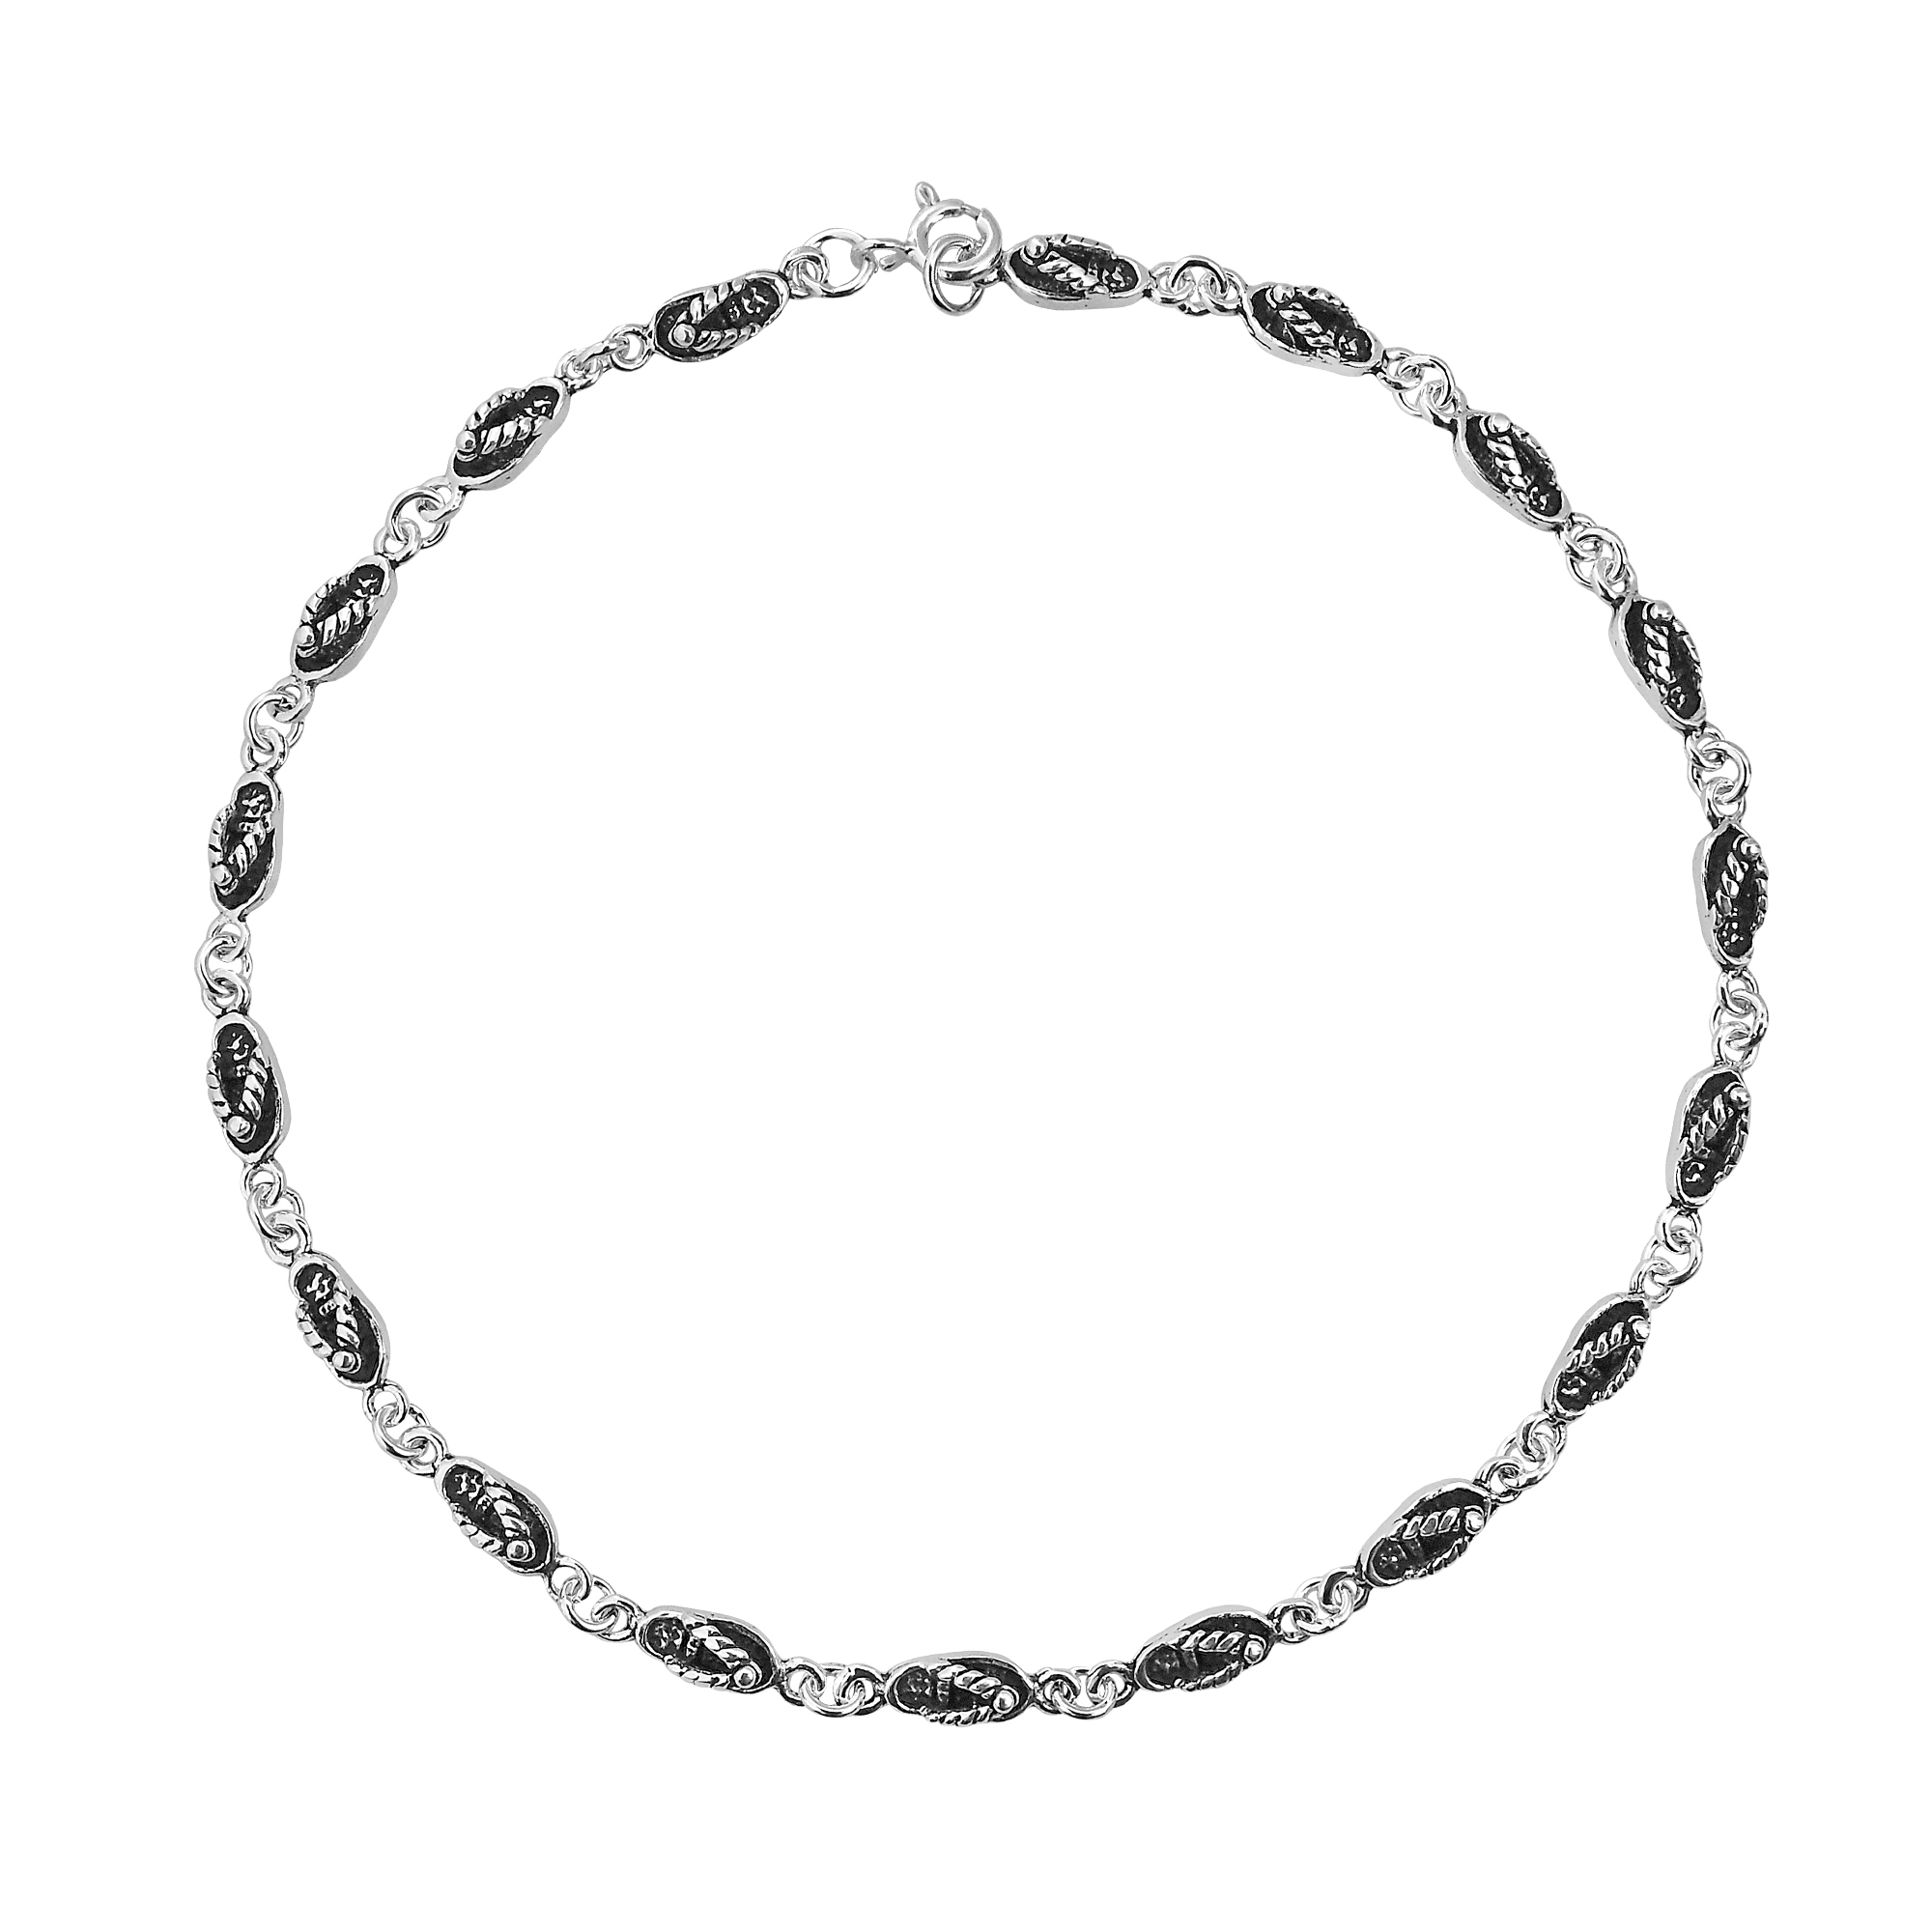 ladies silver for ornament foot anklet female anklets file commons a wikimedia wiki kolusu